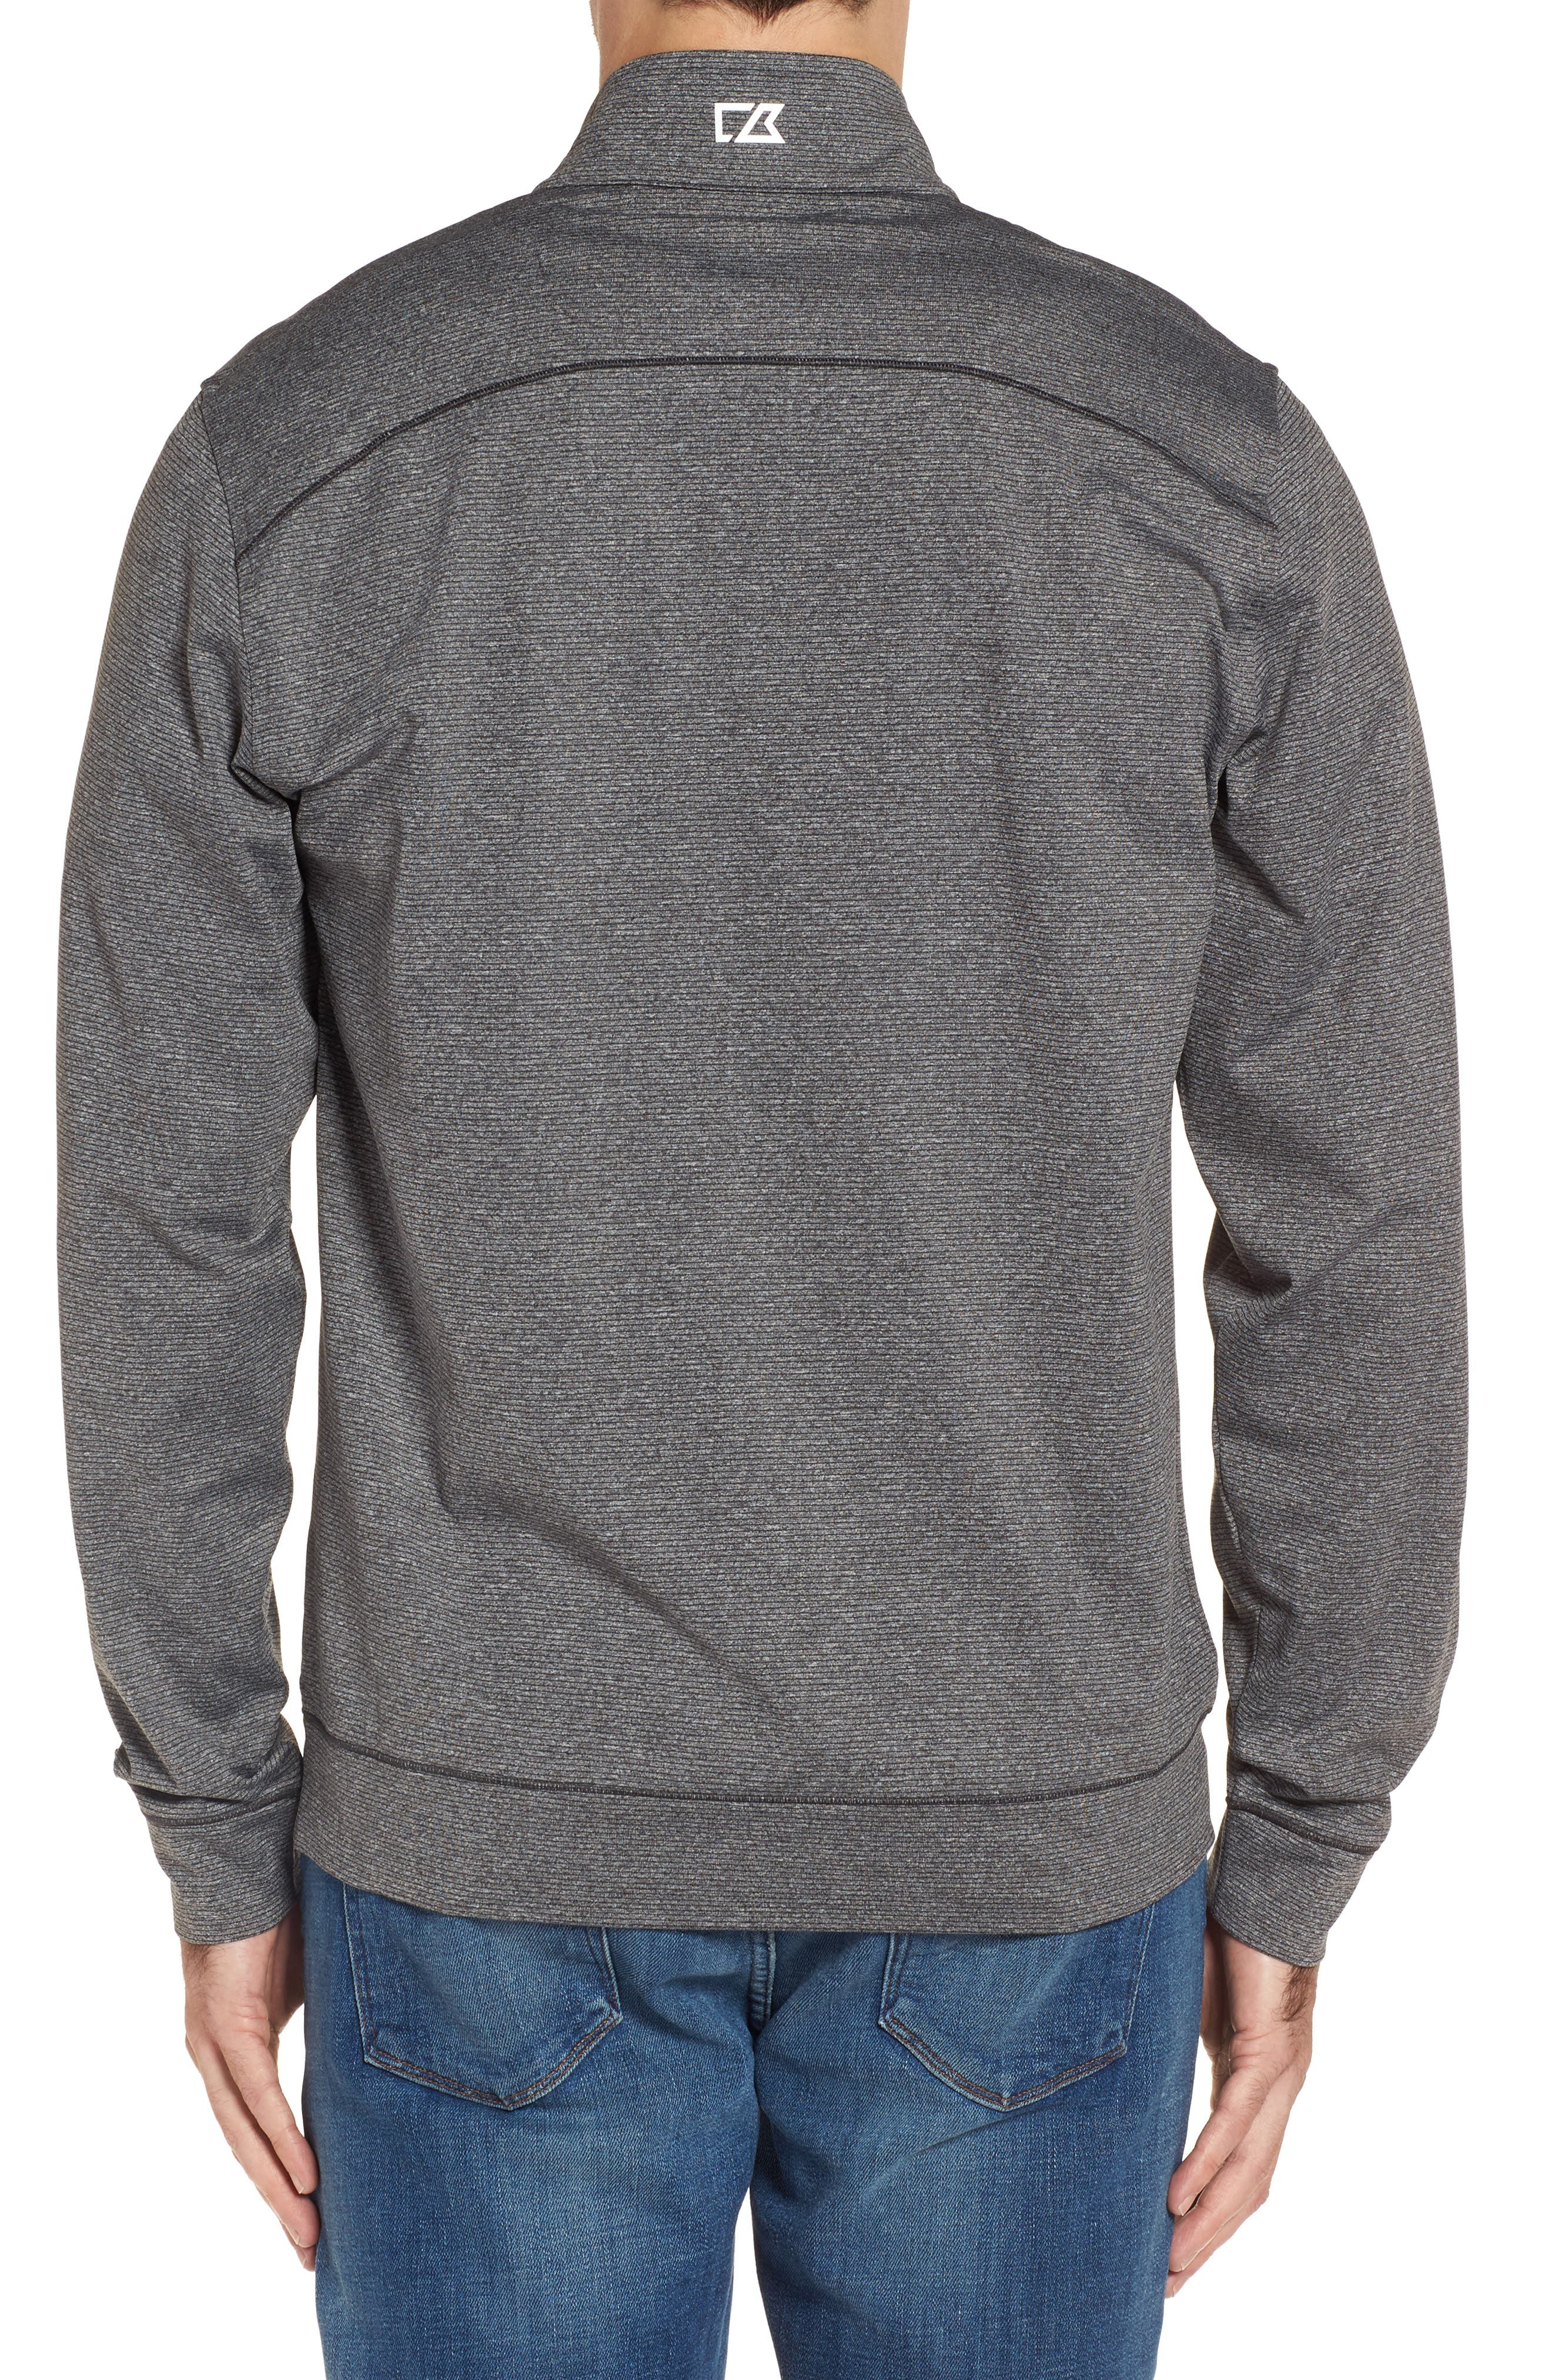 Cutter & Butter Shoreline - Miami Dolphins Half Zip Pullover,                             Alternate thumbnail 2, color,                             Charcoal Heather